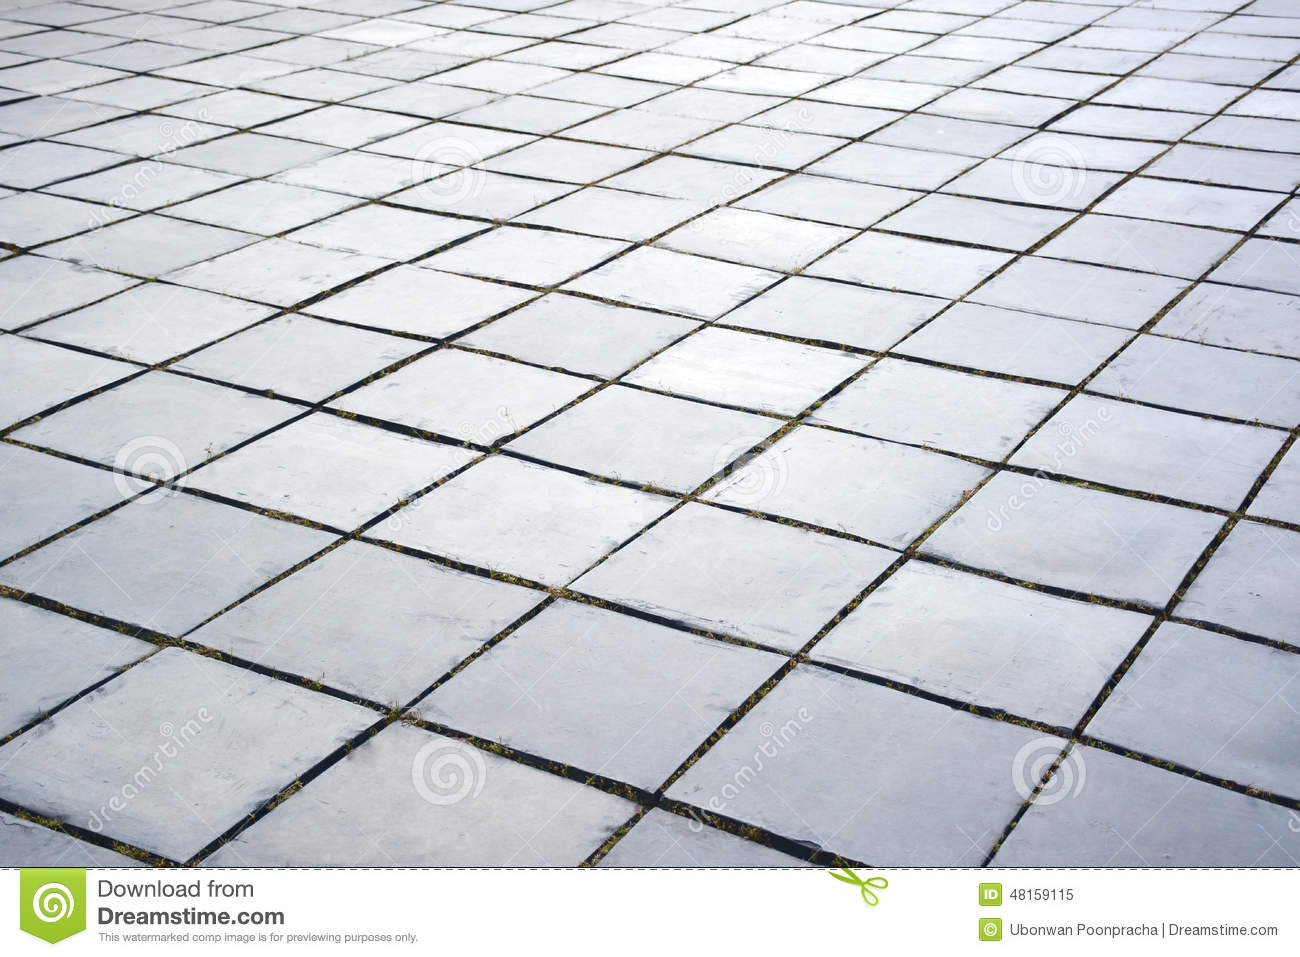 Cement tile block floor texture background stock photo for Concrete block floor